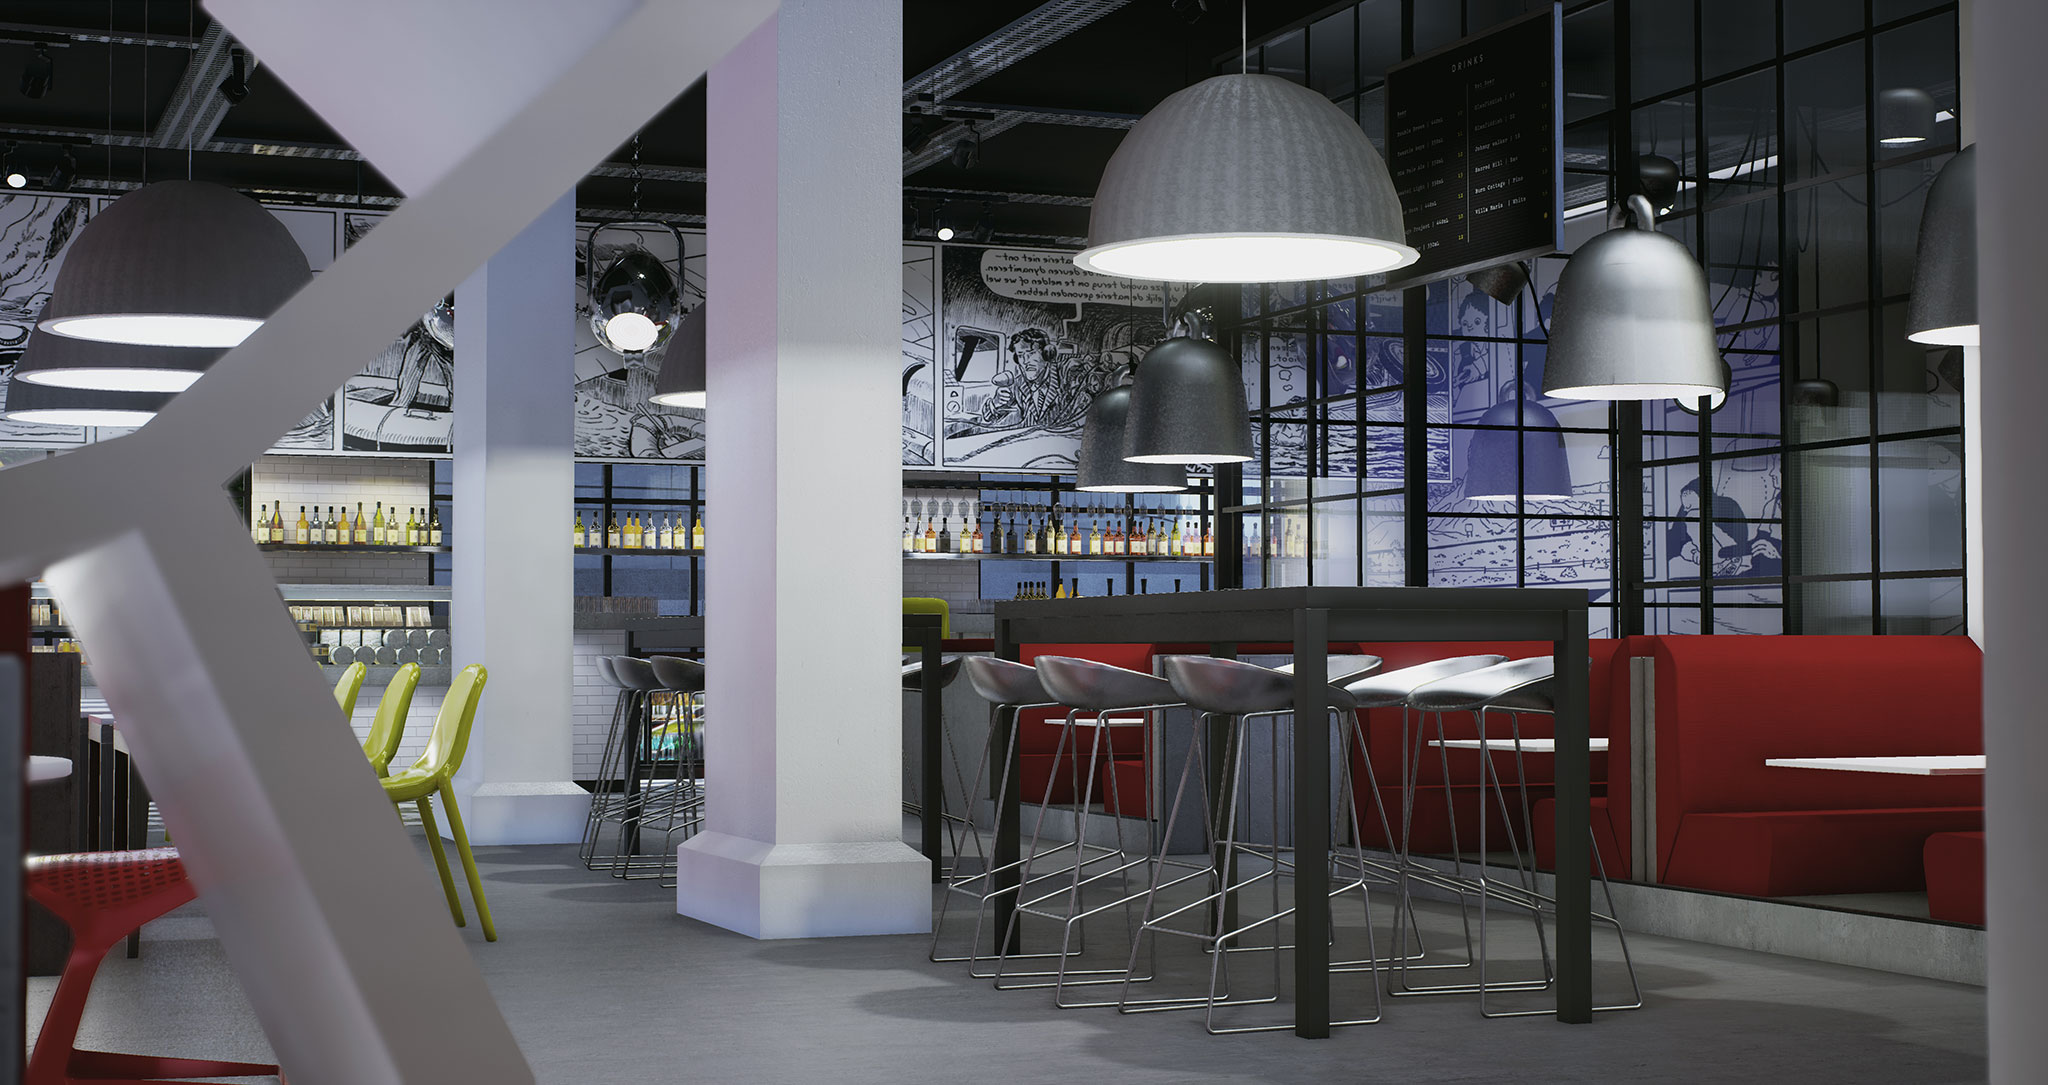 Radisson RED Brussels cafe using Unreal Engine